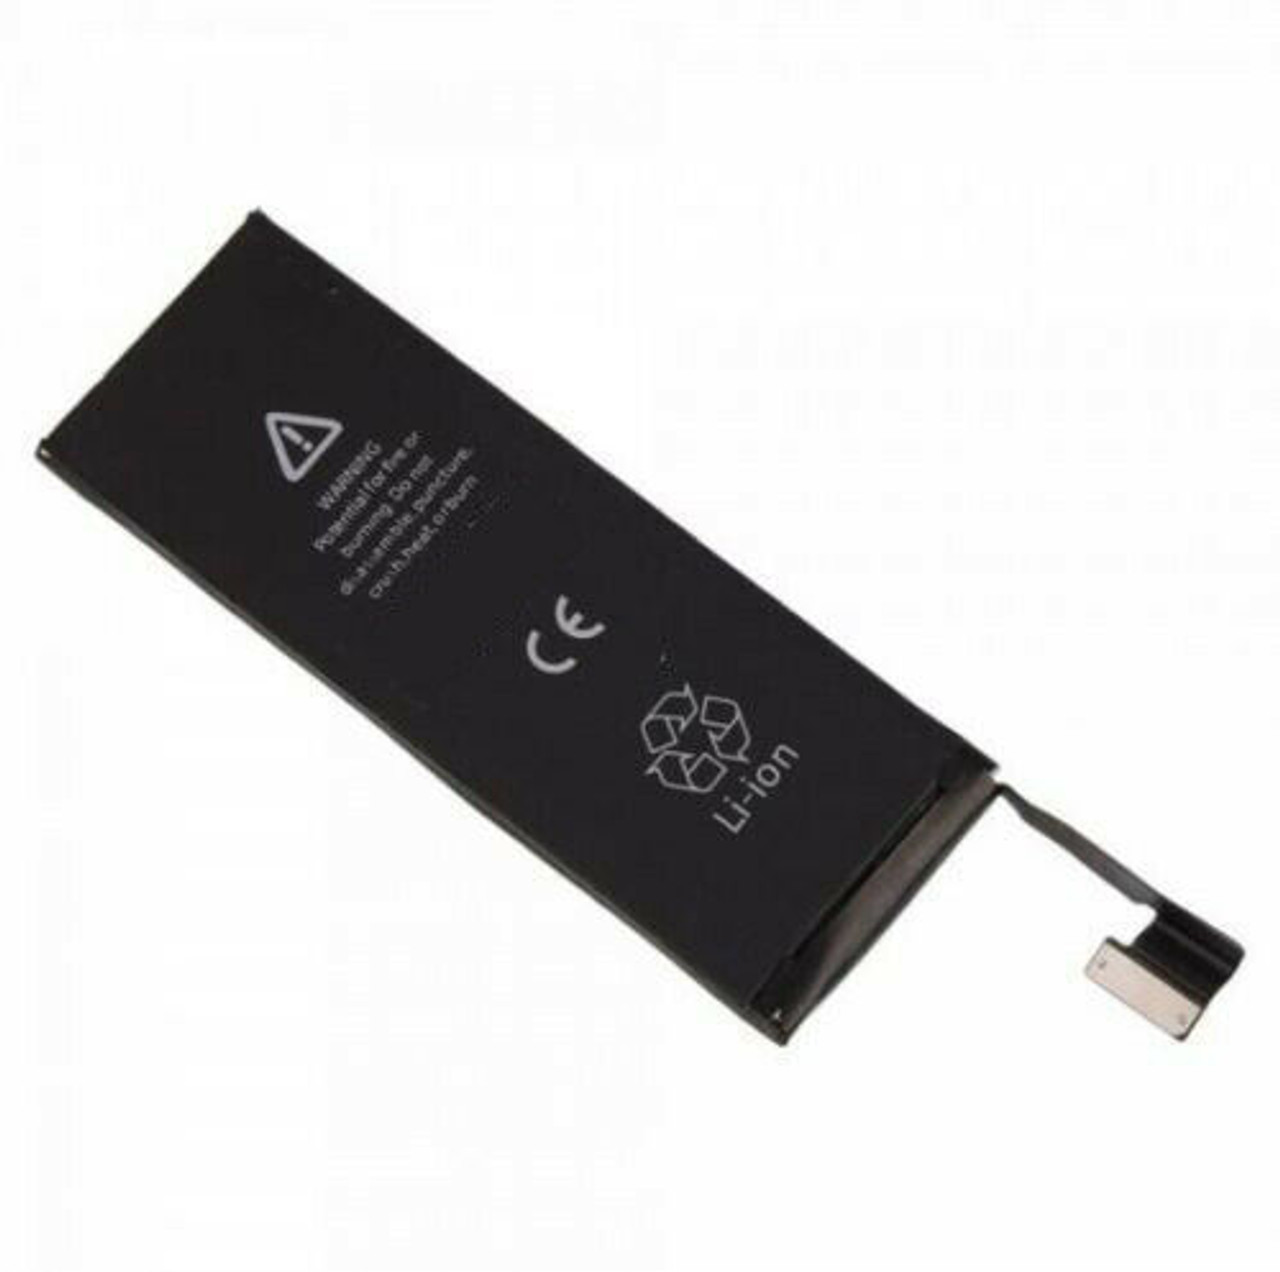 OEM SPEC 1440mAh Internal Replacement 3.8V Li-ion Battery For iPhone 5 5G GSM